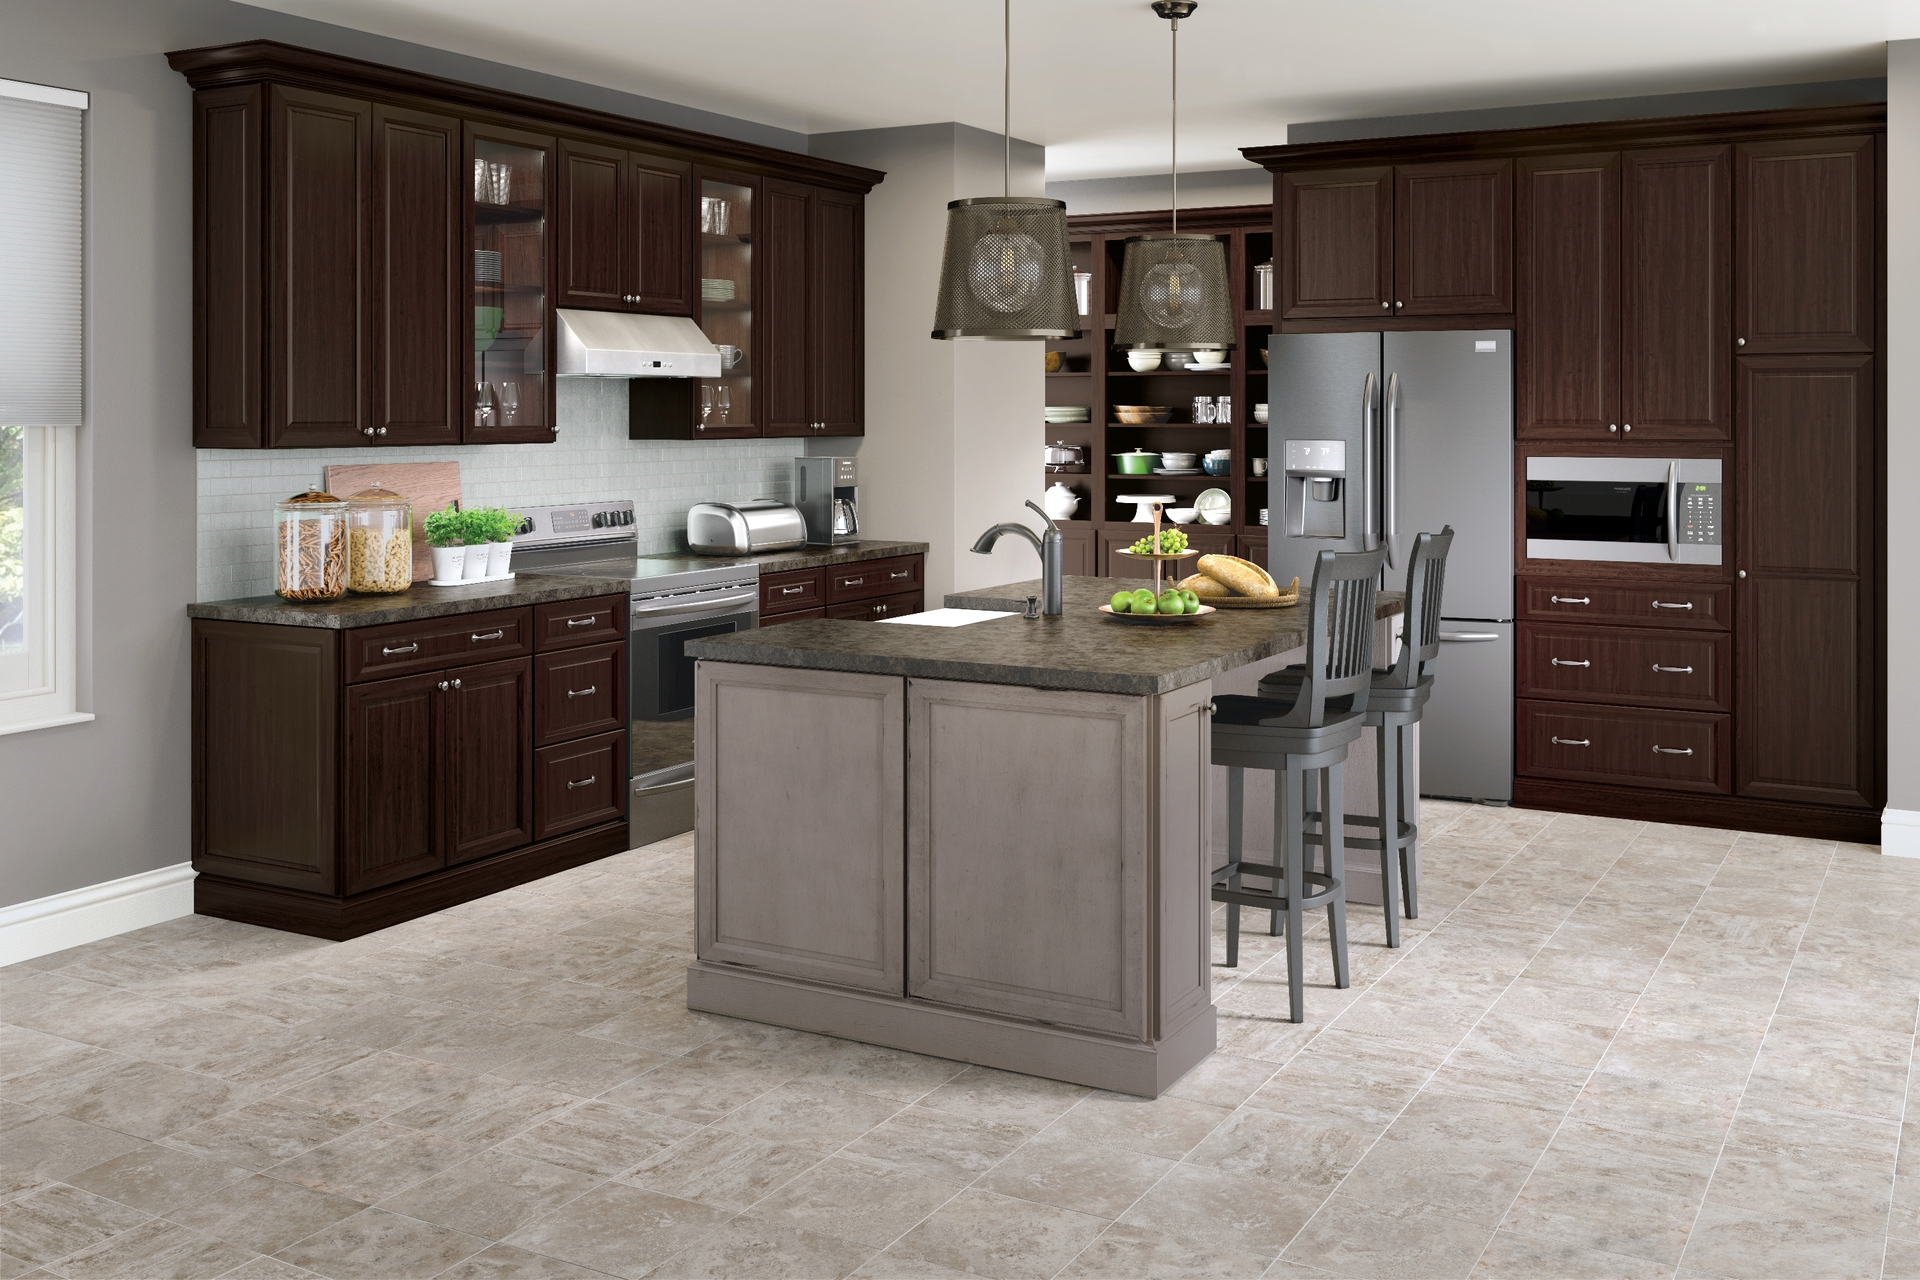 Cardell Kitchen Cabinets - Knowlton Cherry in Peppercorn